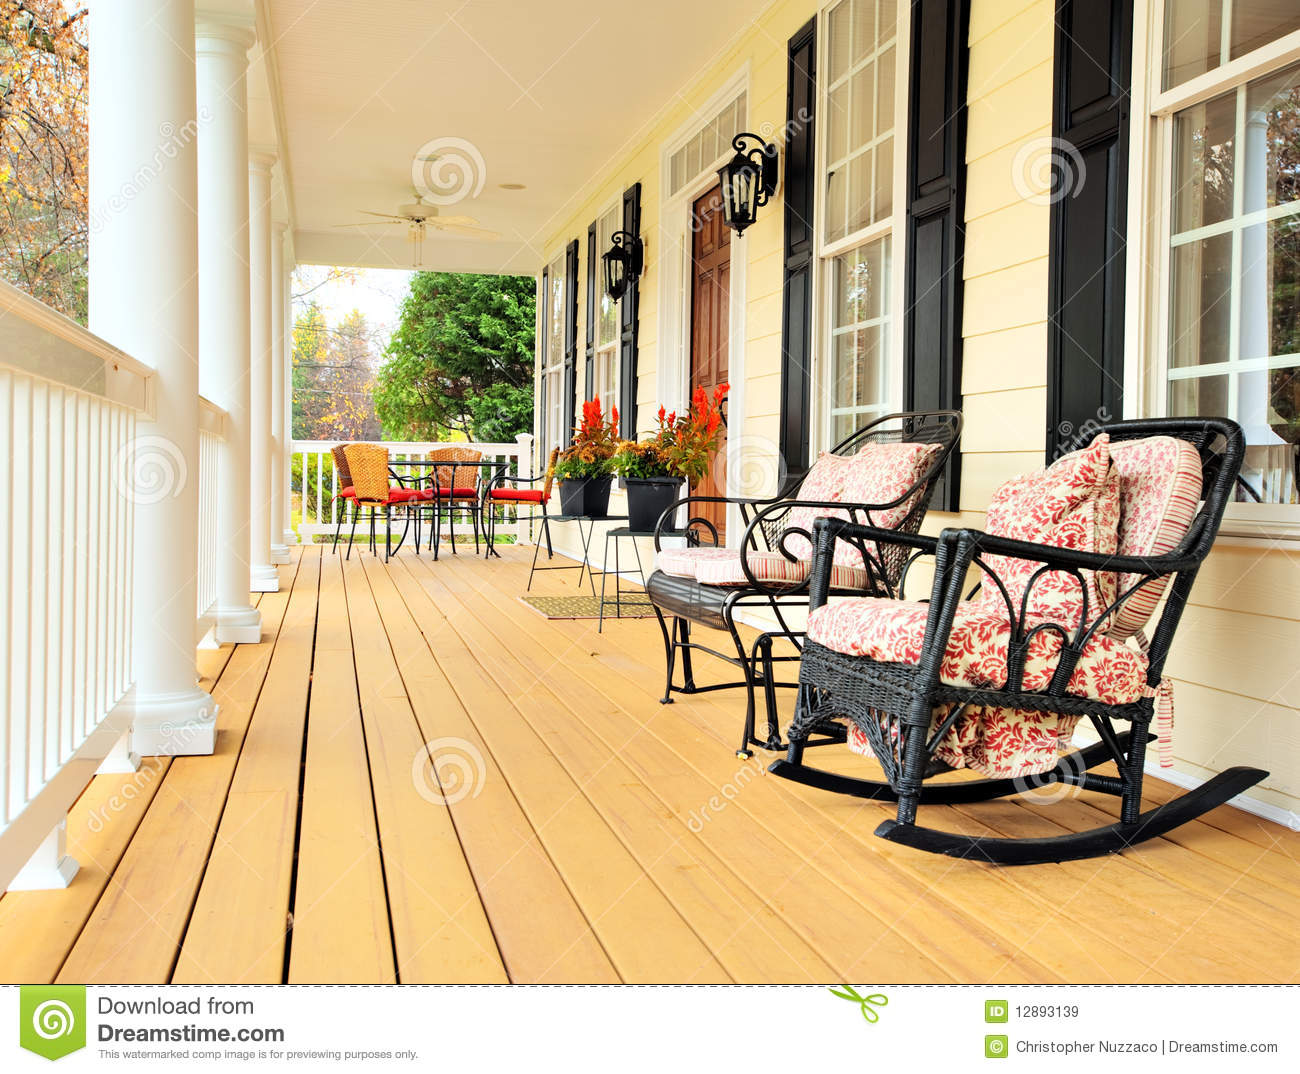 Covered front porch craftsman style home royalty free stock image - Front Porch Of Traditional Home Royalty Free Stock Images